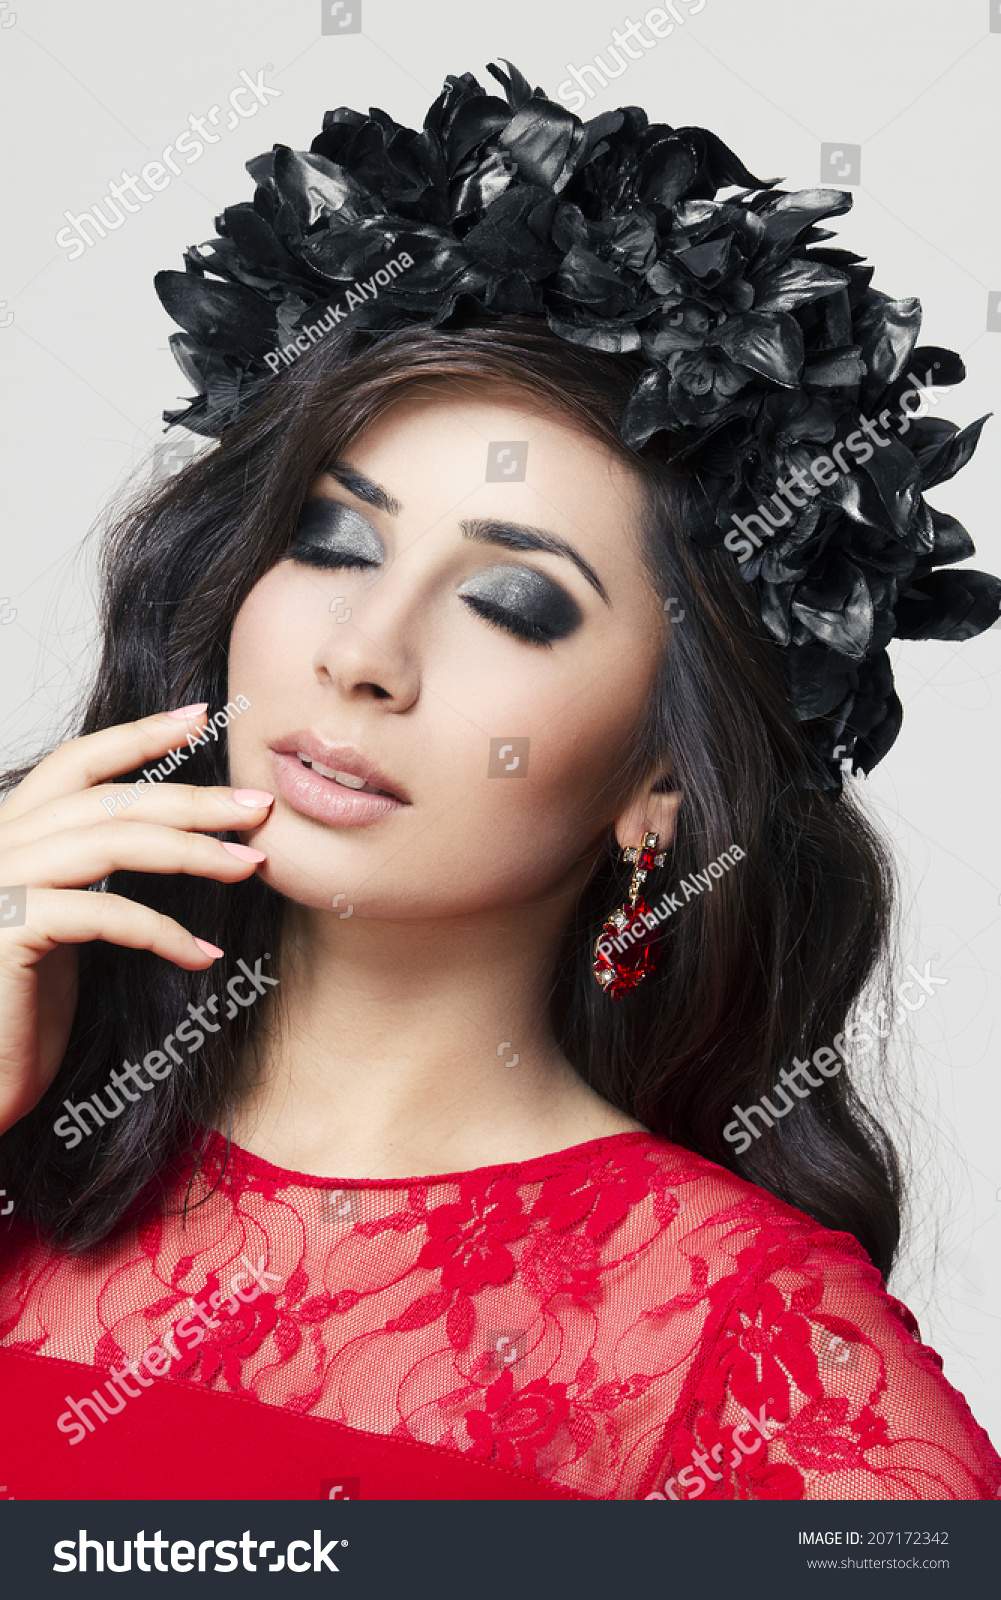 bock muslim single women Muslim single woman - if you are looking for the best online dating site, then you come to the right place sign up to meet and chat with new people and potential relationships.